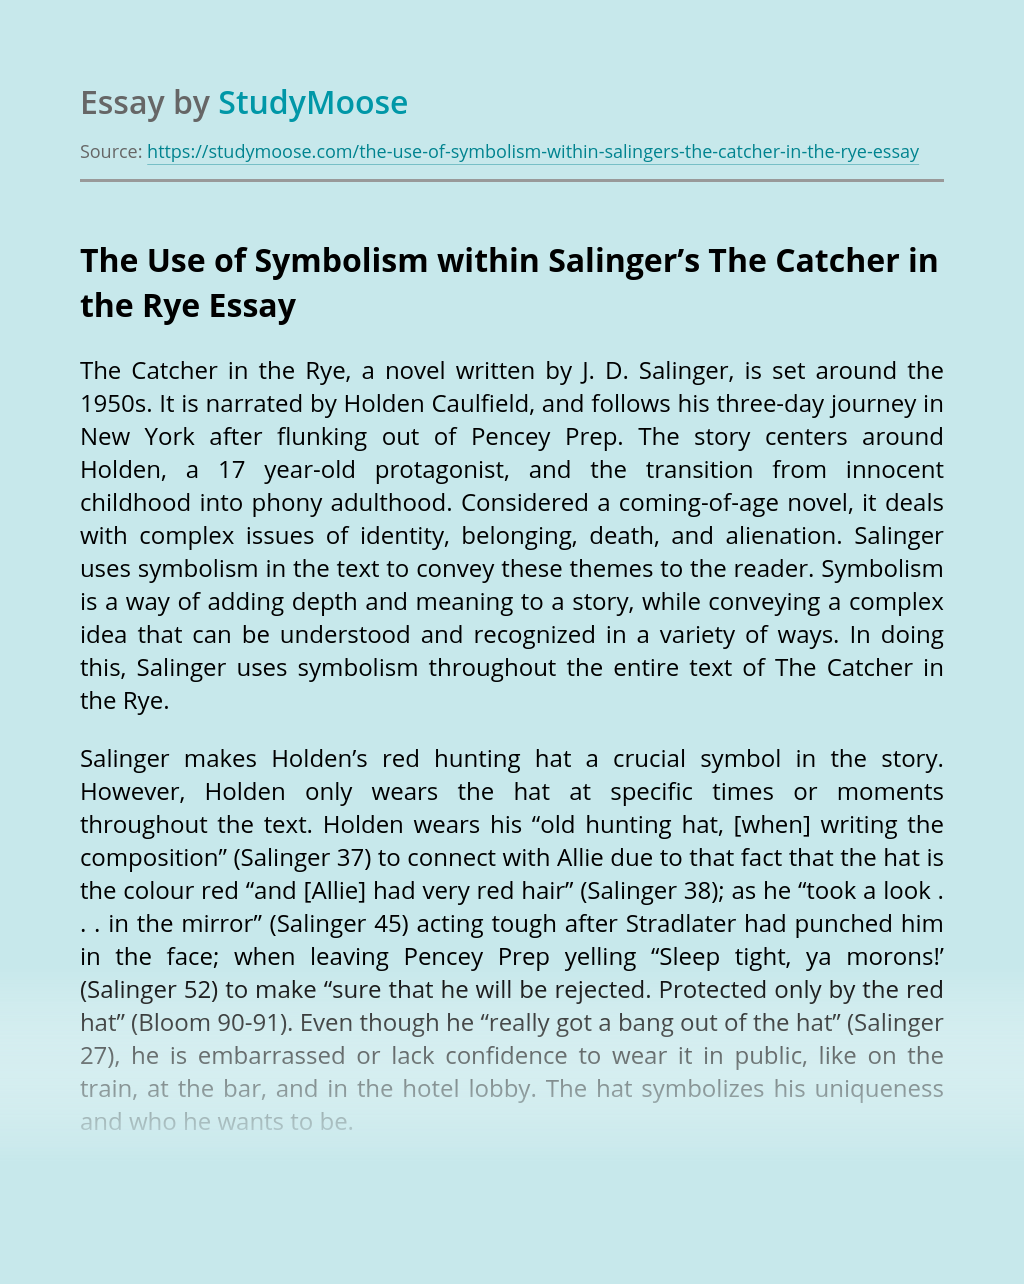 The Use of Symbolism within Salinger's The Catcher in the Rye